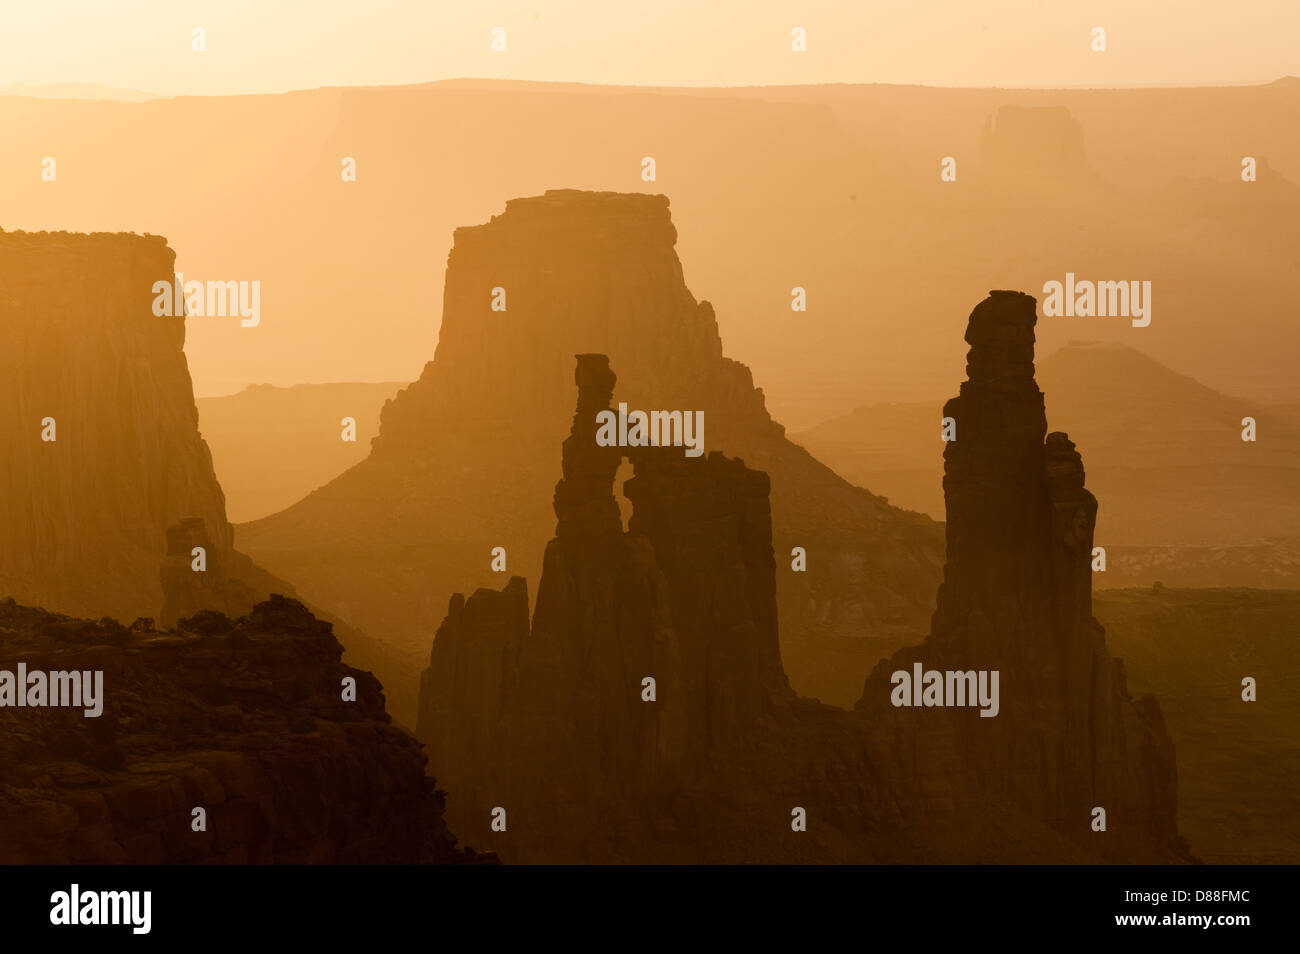 Rock spires and mesas recede into the distance as seen at Canyonlands National Park, Utah shortly after sunrise. - Stock Image